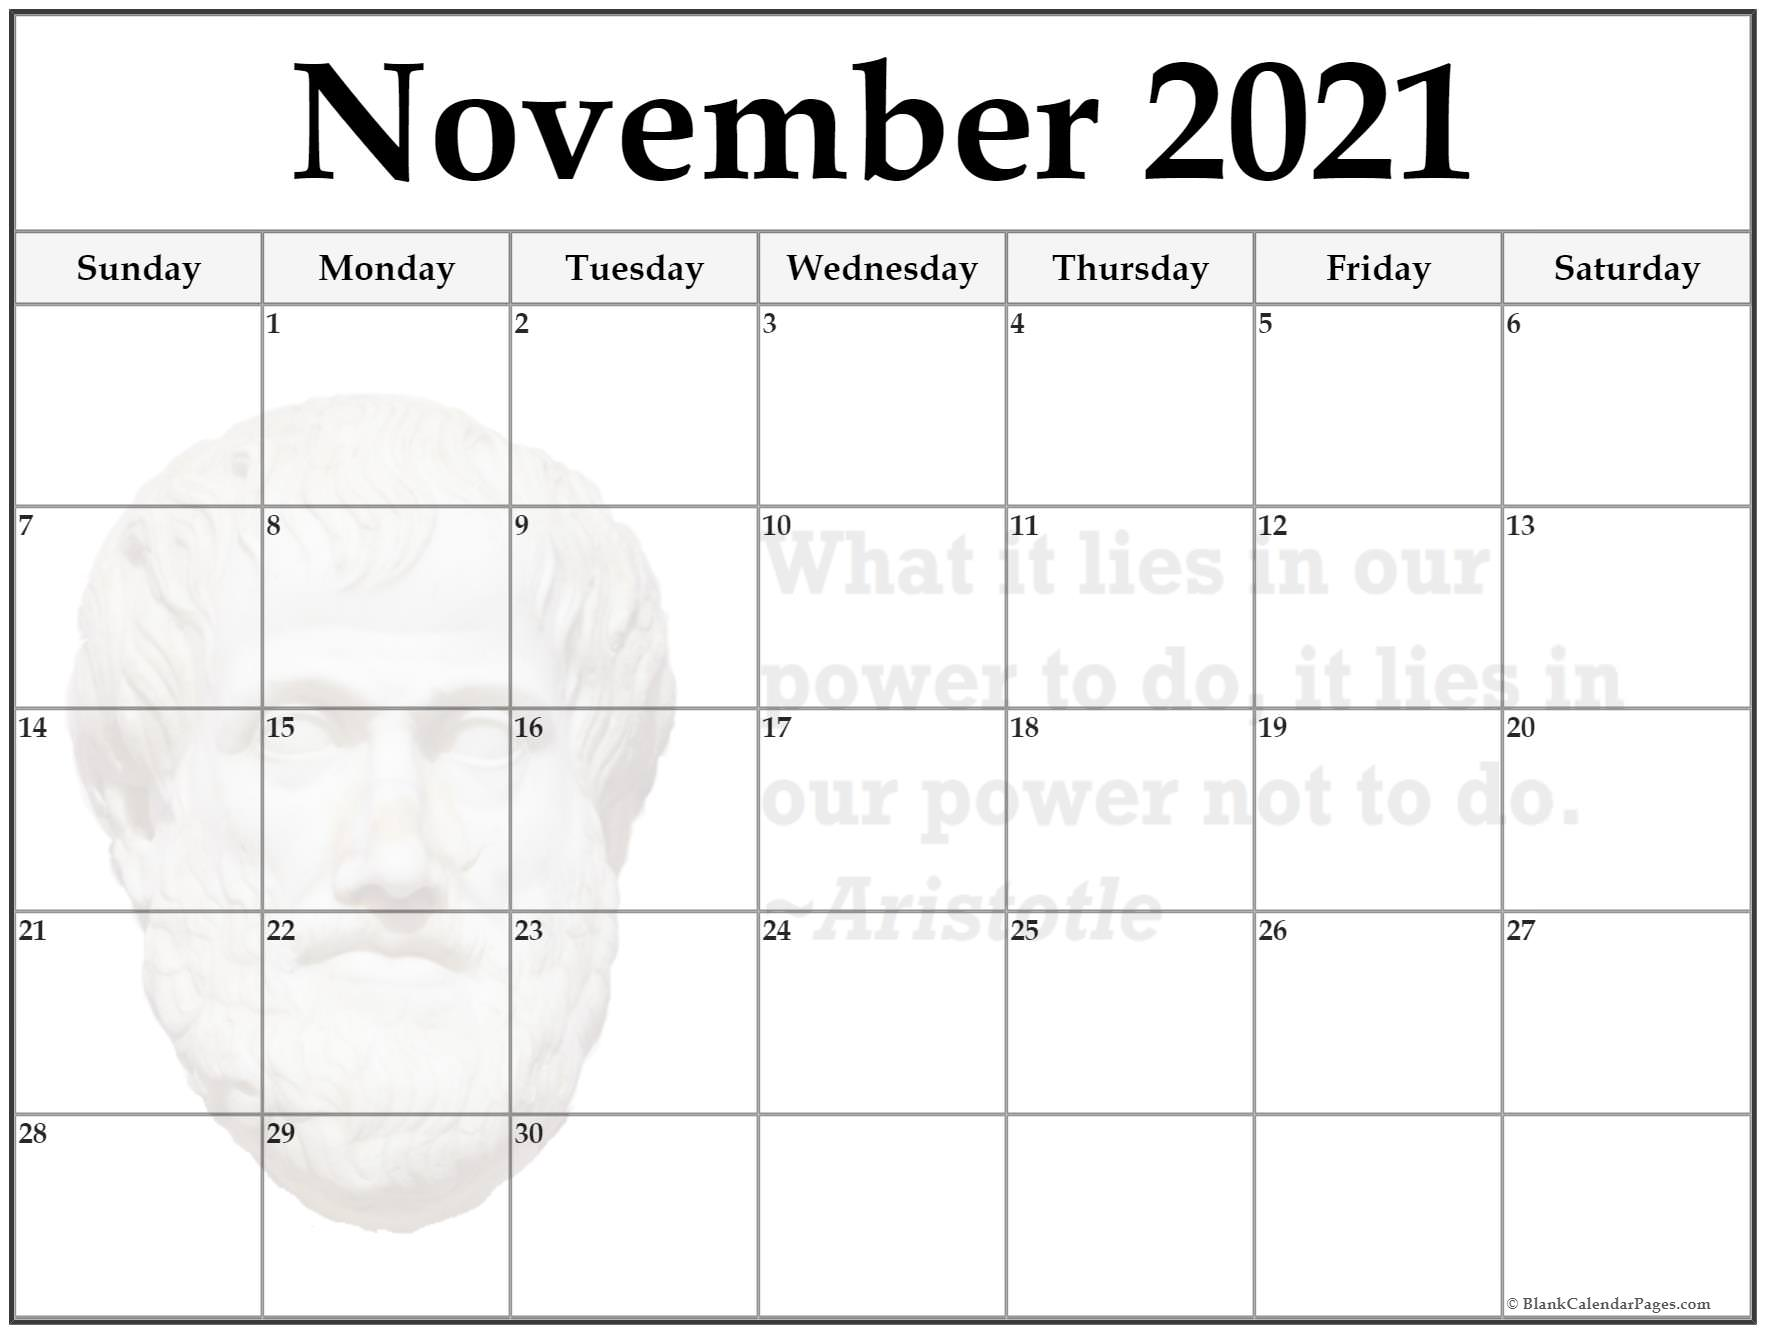 November calendar 2019What is lies in our power to do, it lies in our power not to do ~Aristotle